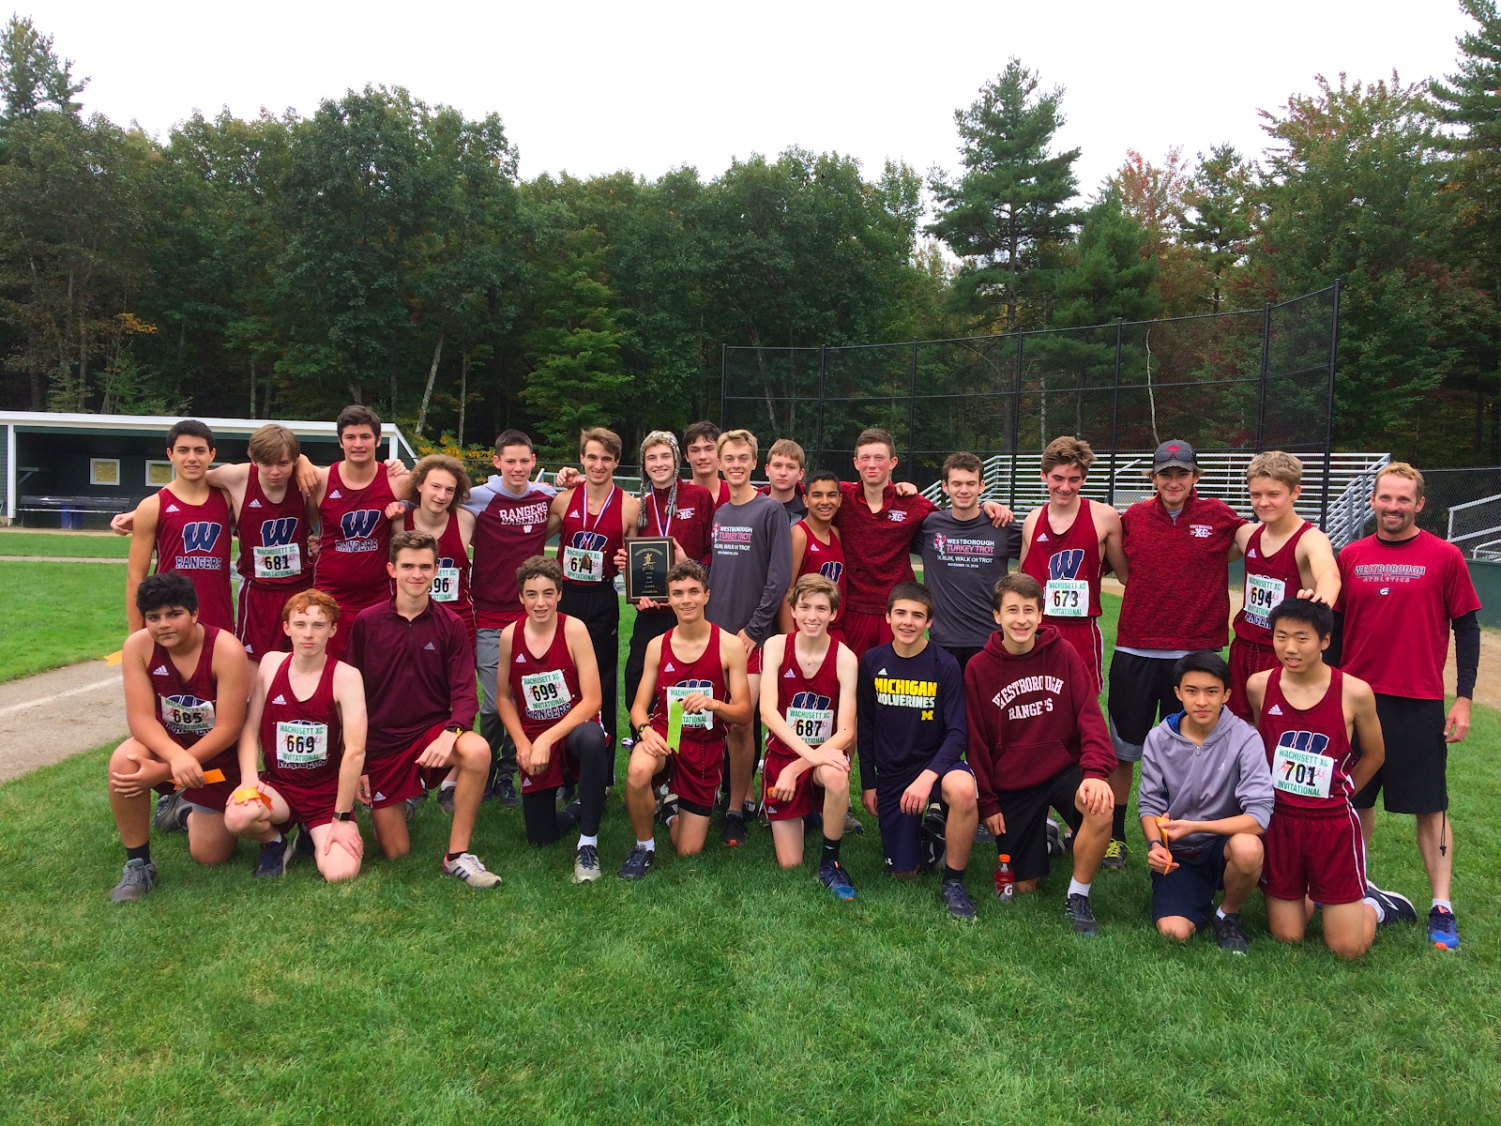 Westborough cross country team after winning the Varsity B Race at the 61st annual Wachusett Invitational Meet on October 6th at Wachusett Regional High School in Holden, MA.